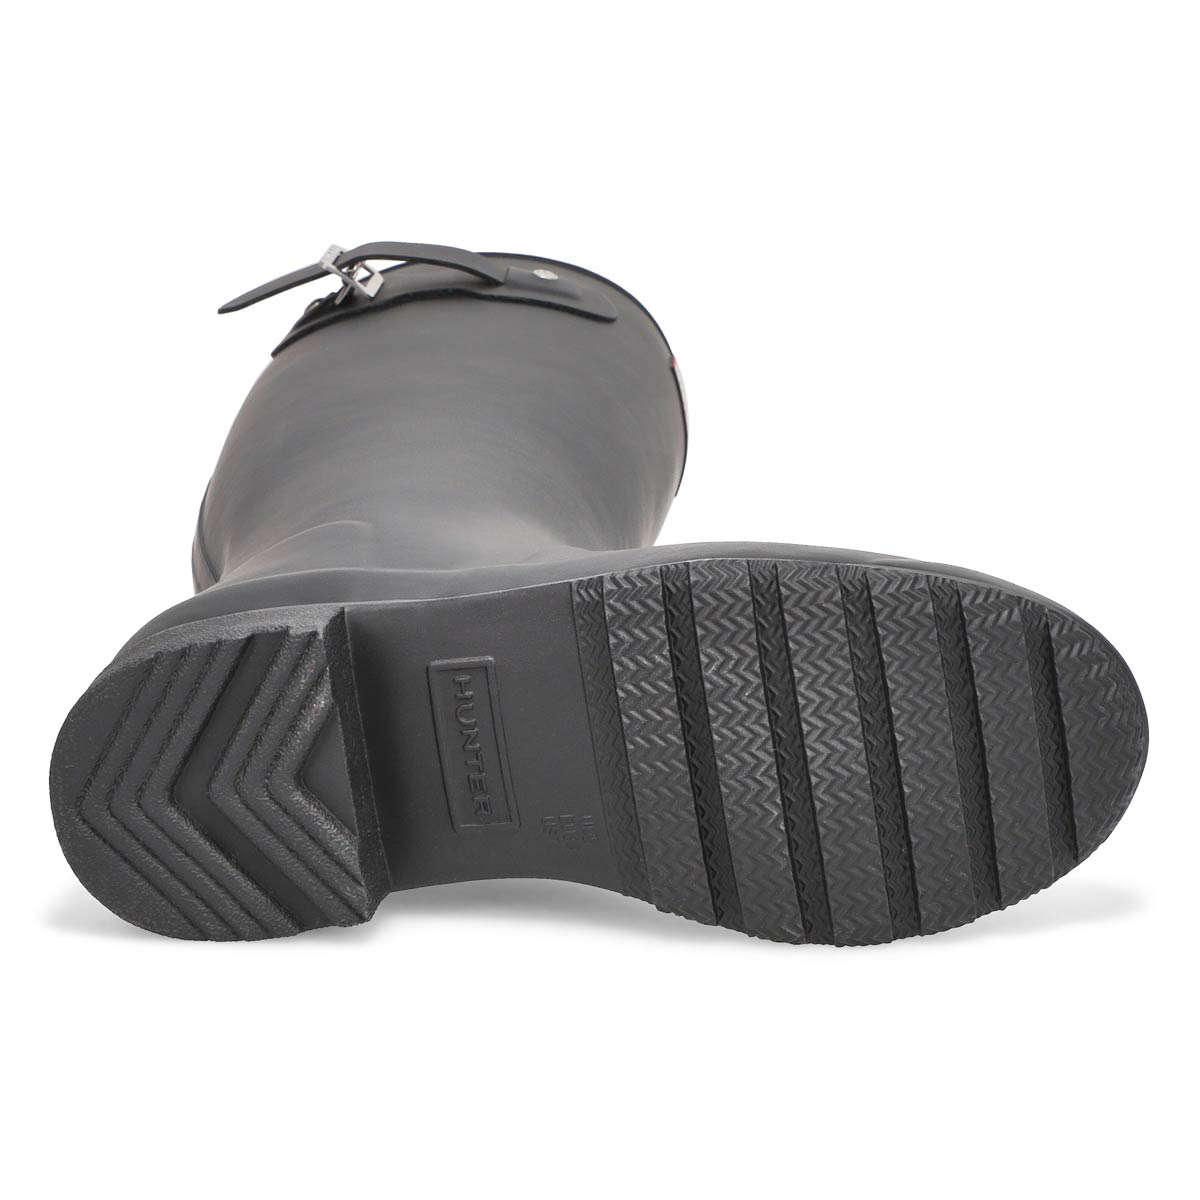 Lds Original Tour Classic blk rain boot